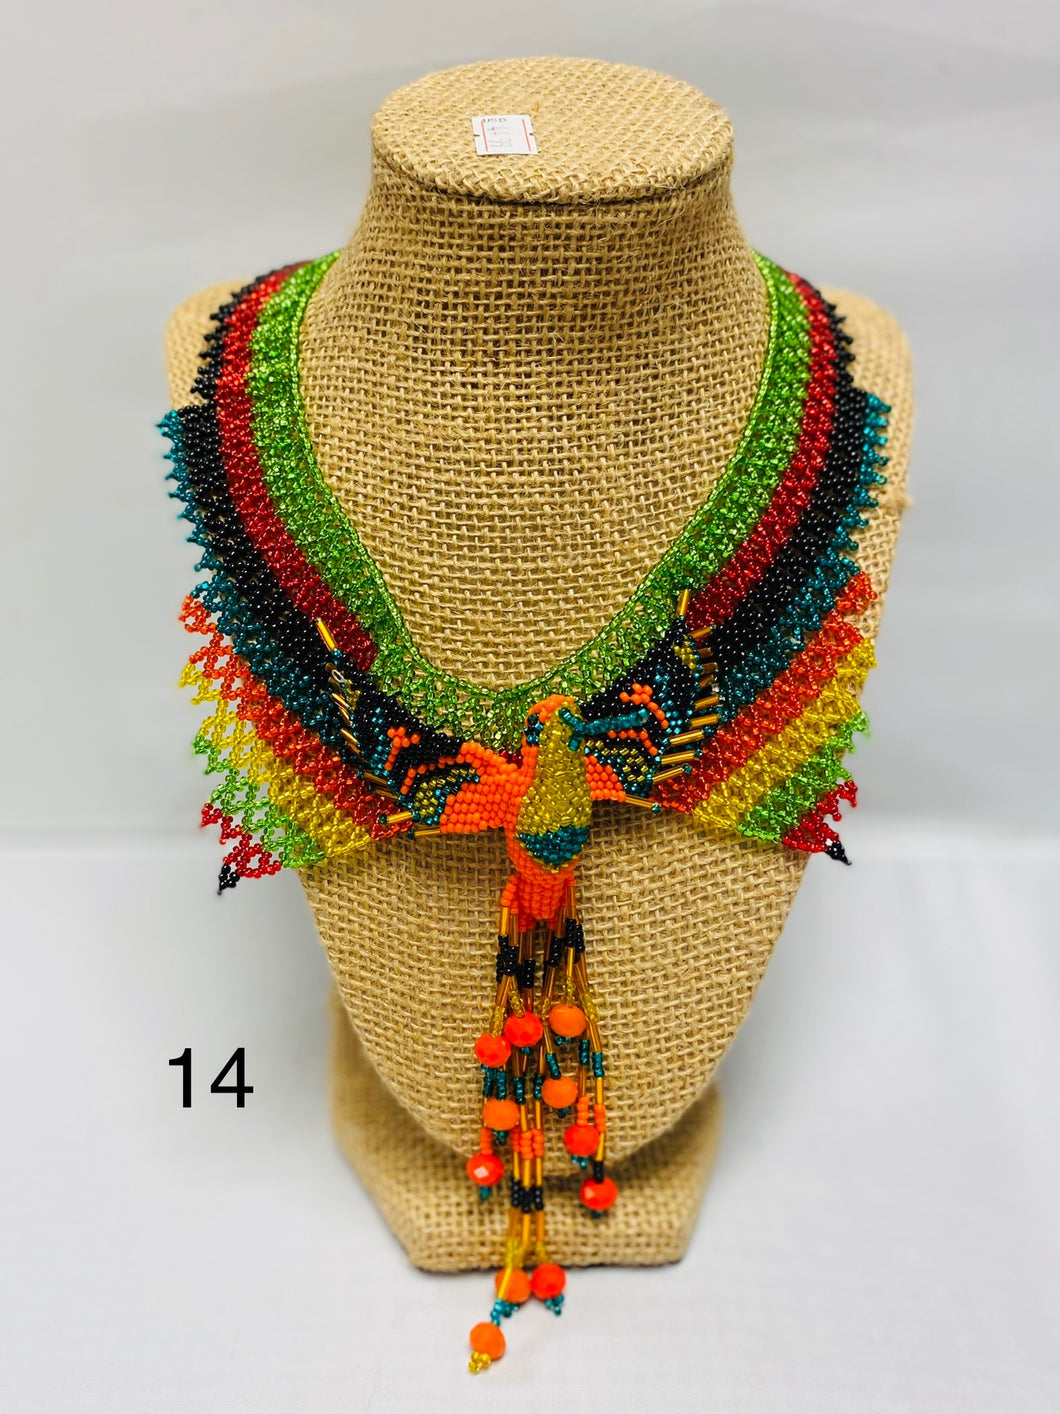 Hummingbird Beaded Huichol  Artisanal Necklace